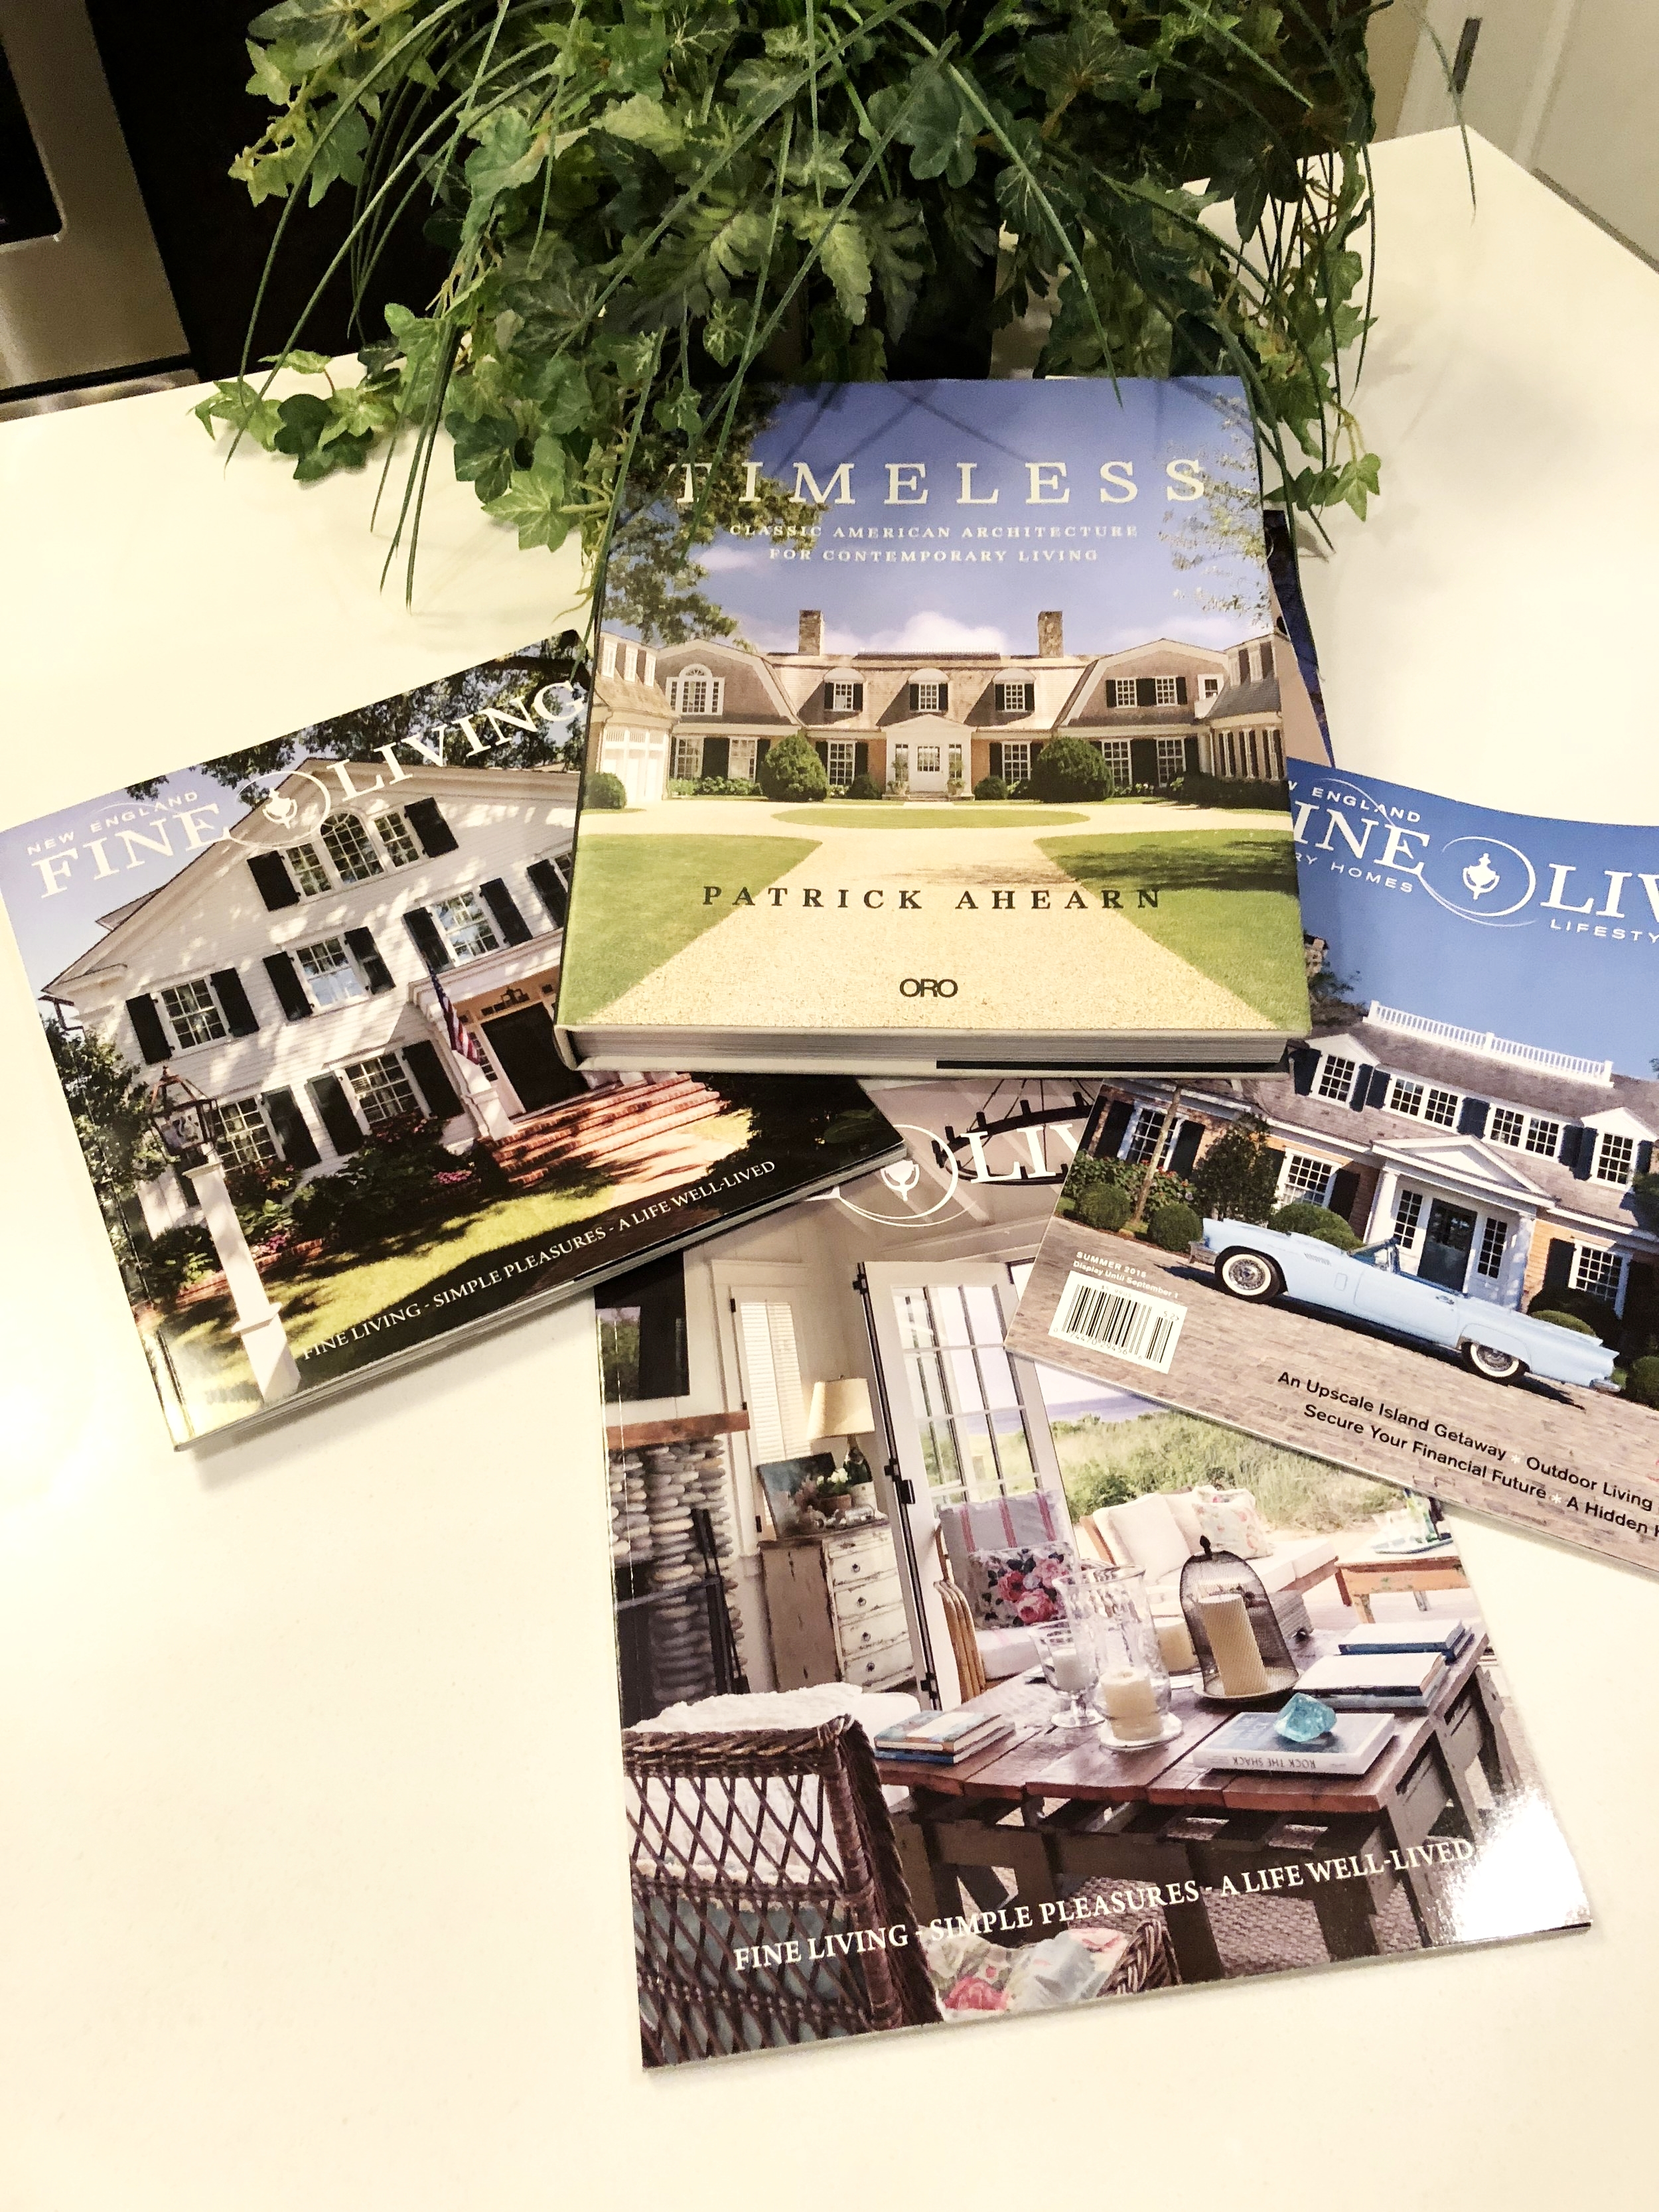 On The Cover - Summer 2015 & 2017 issues and the Spring 2017 issue of New England Fine Living magazines showcase Patrick Ahearns work - Back Copies of these magazines are available  HERE